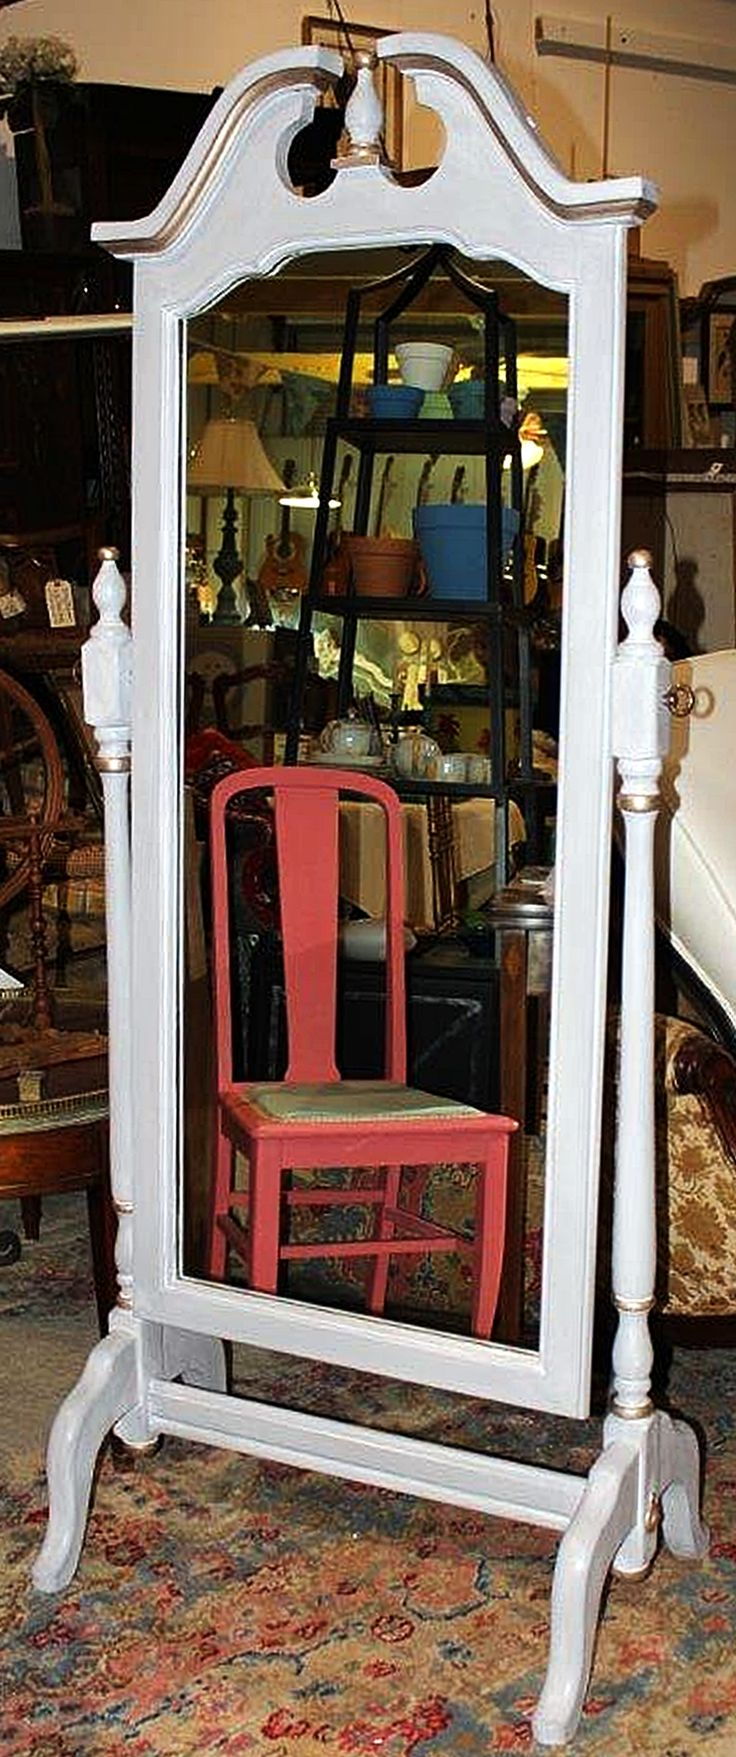 Annie sloan antoinette chalk paint 174 - Resurrected Cheval Mirror In Paris Grey And Old White Wash Cheval Mirrorstanding Mirrorchalk Paint